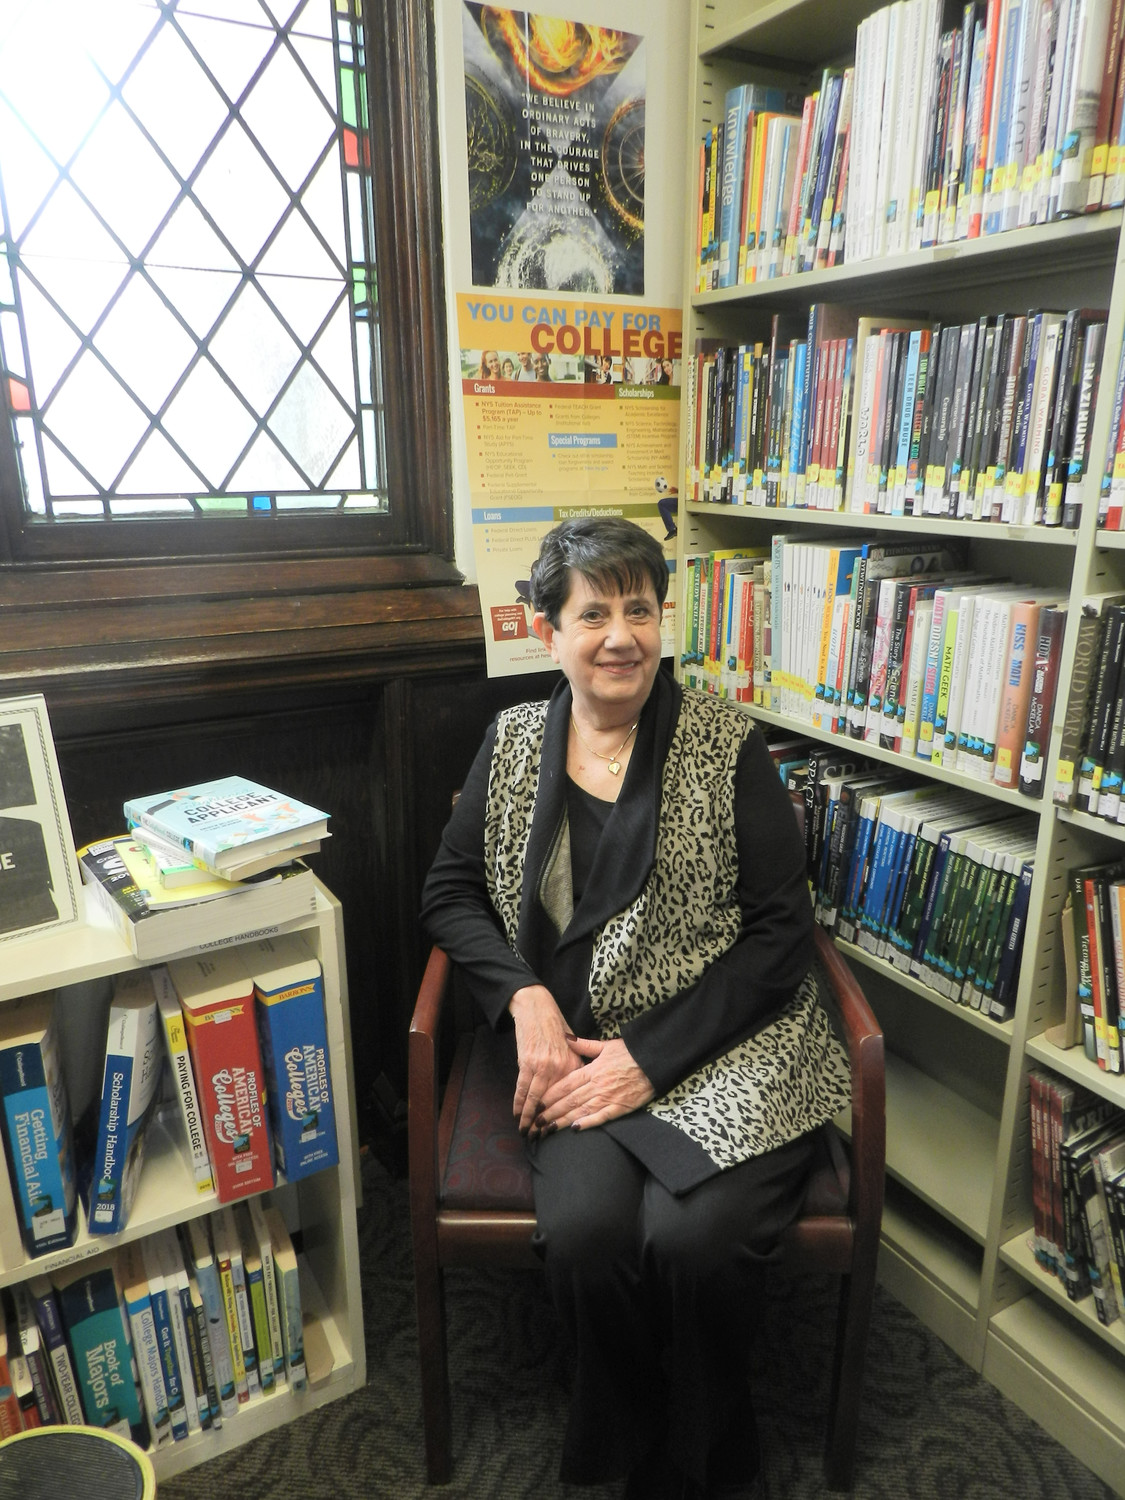 Far Rockaway native Arlene Nevens, the director of the Sea Cliff Village Library for the past 11 years, added new books and literary classics to the library's inventory in her first few months as director. She has worked to upgrade all services from programming to technology.